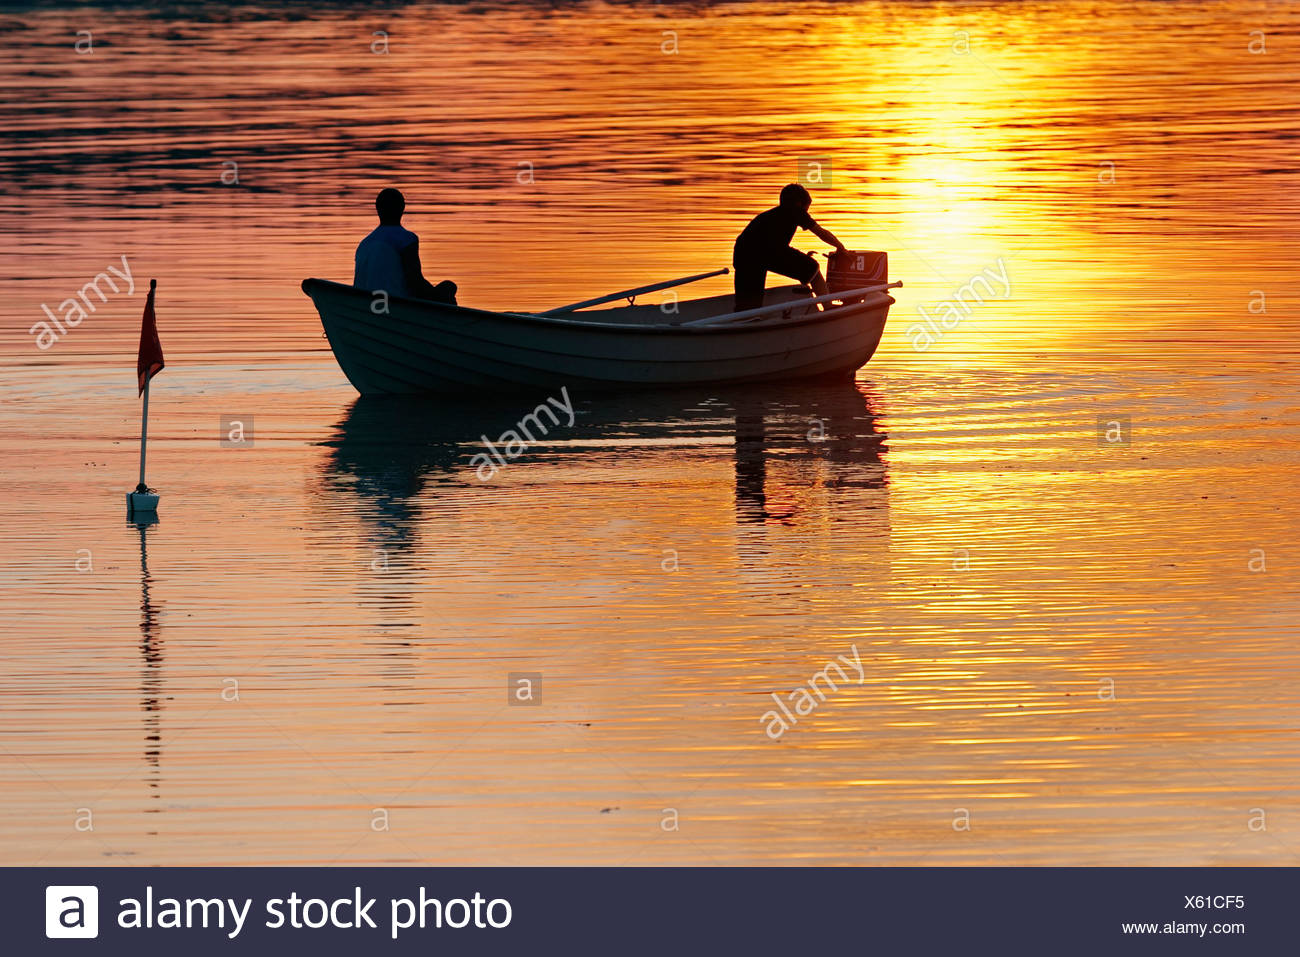 Side view of two men in motorboat with engine failure in the lake at sunset - Stock Image